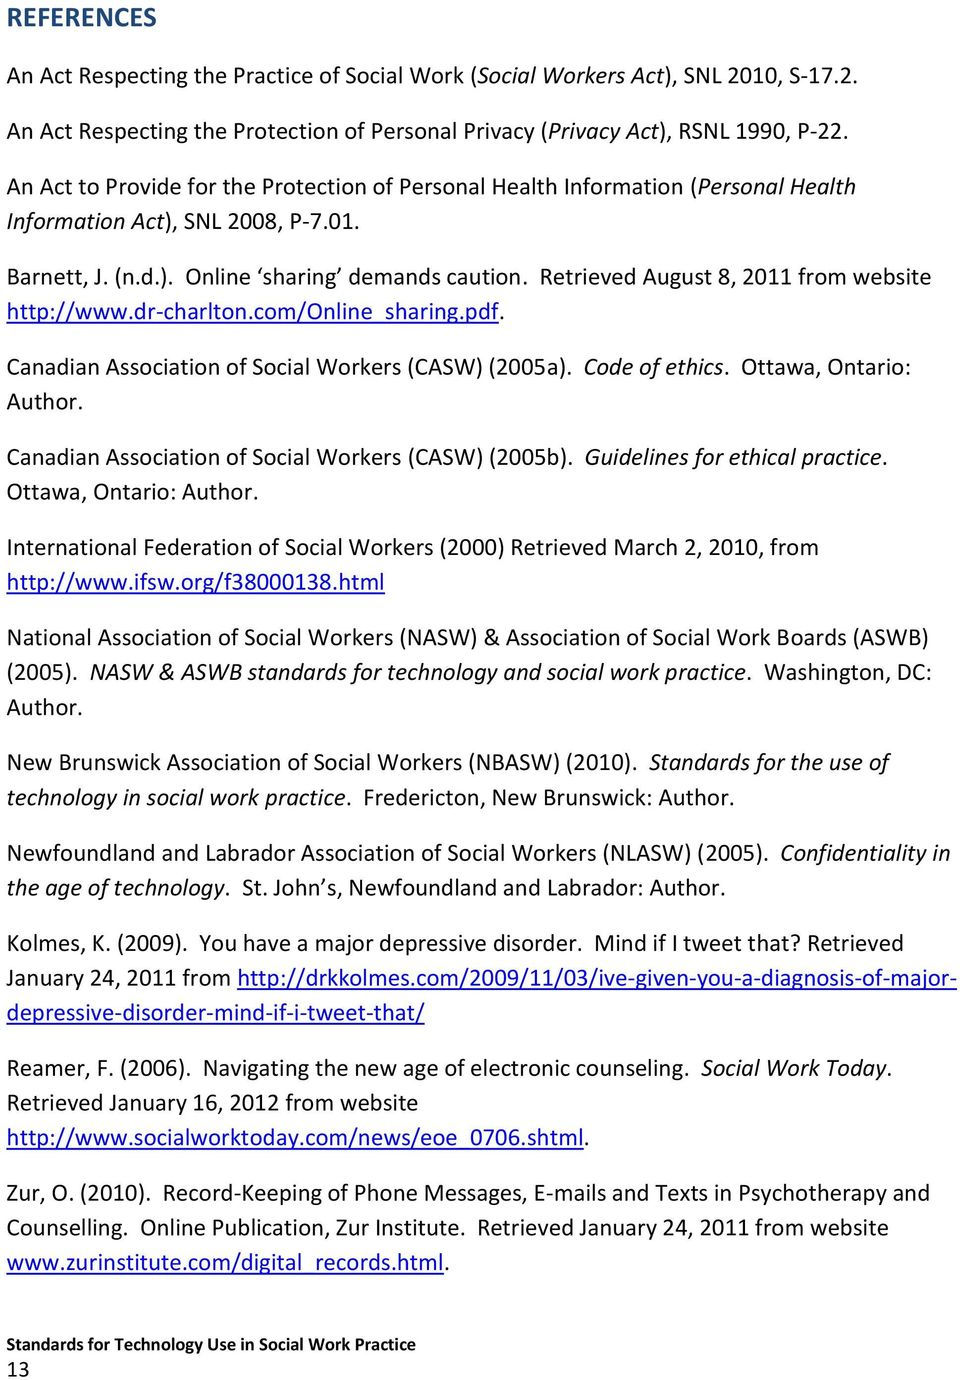 Retrieved August 8, 2011 from website http://www.dr-charlton.com/online_sharing.pdf. Canadian Association of Social Workers (CASW) (2005a). Code of ethics. Ottawa, Ontario: Author.